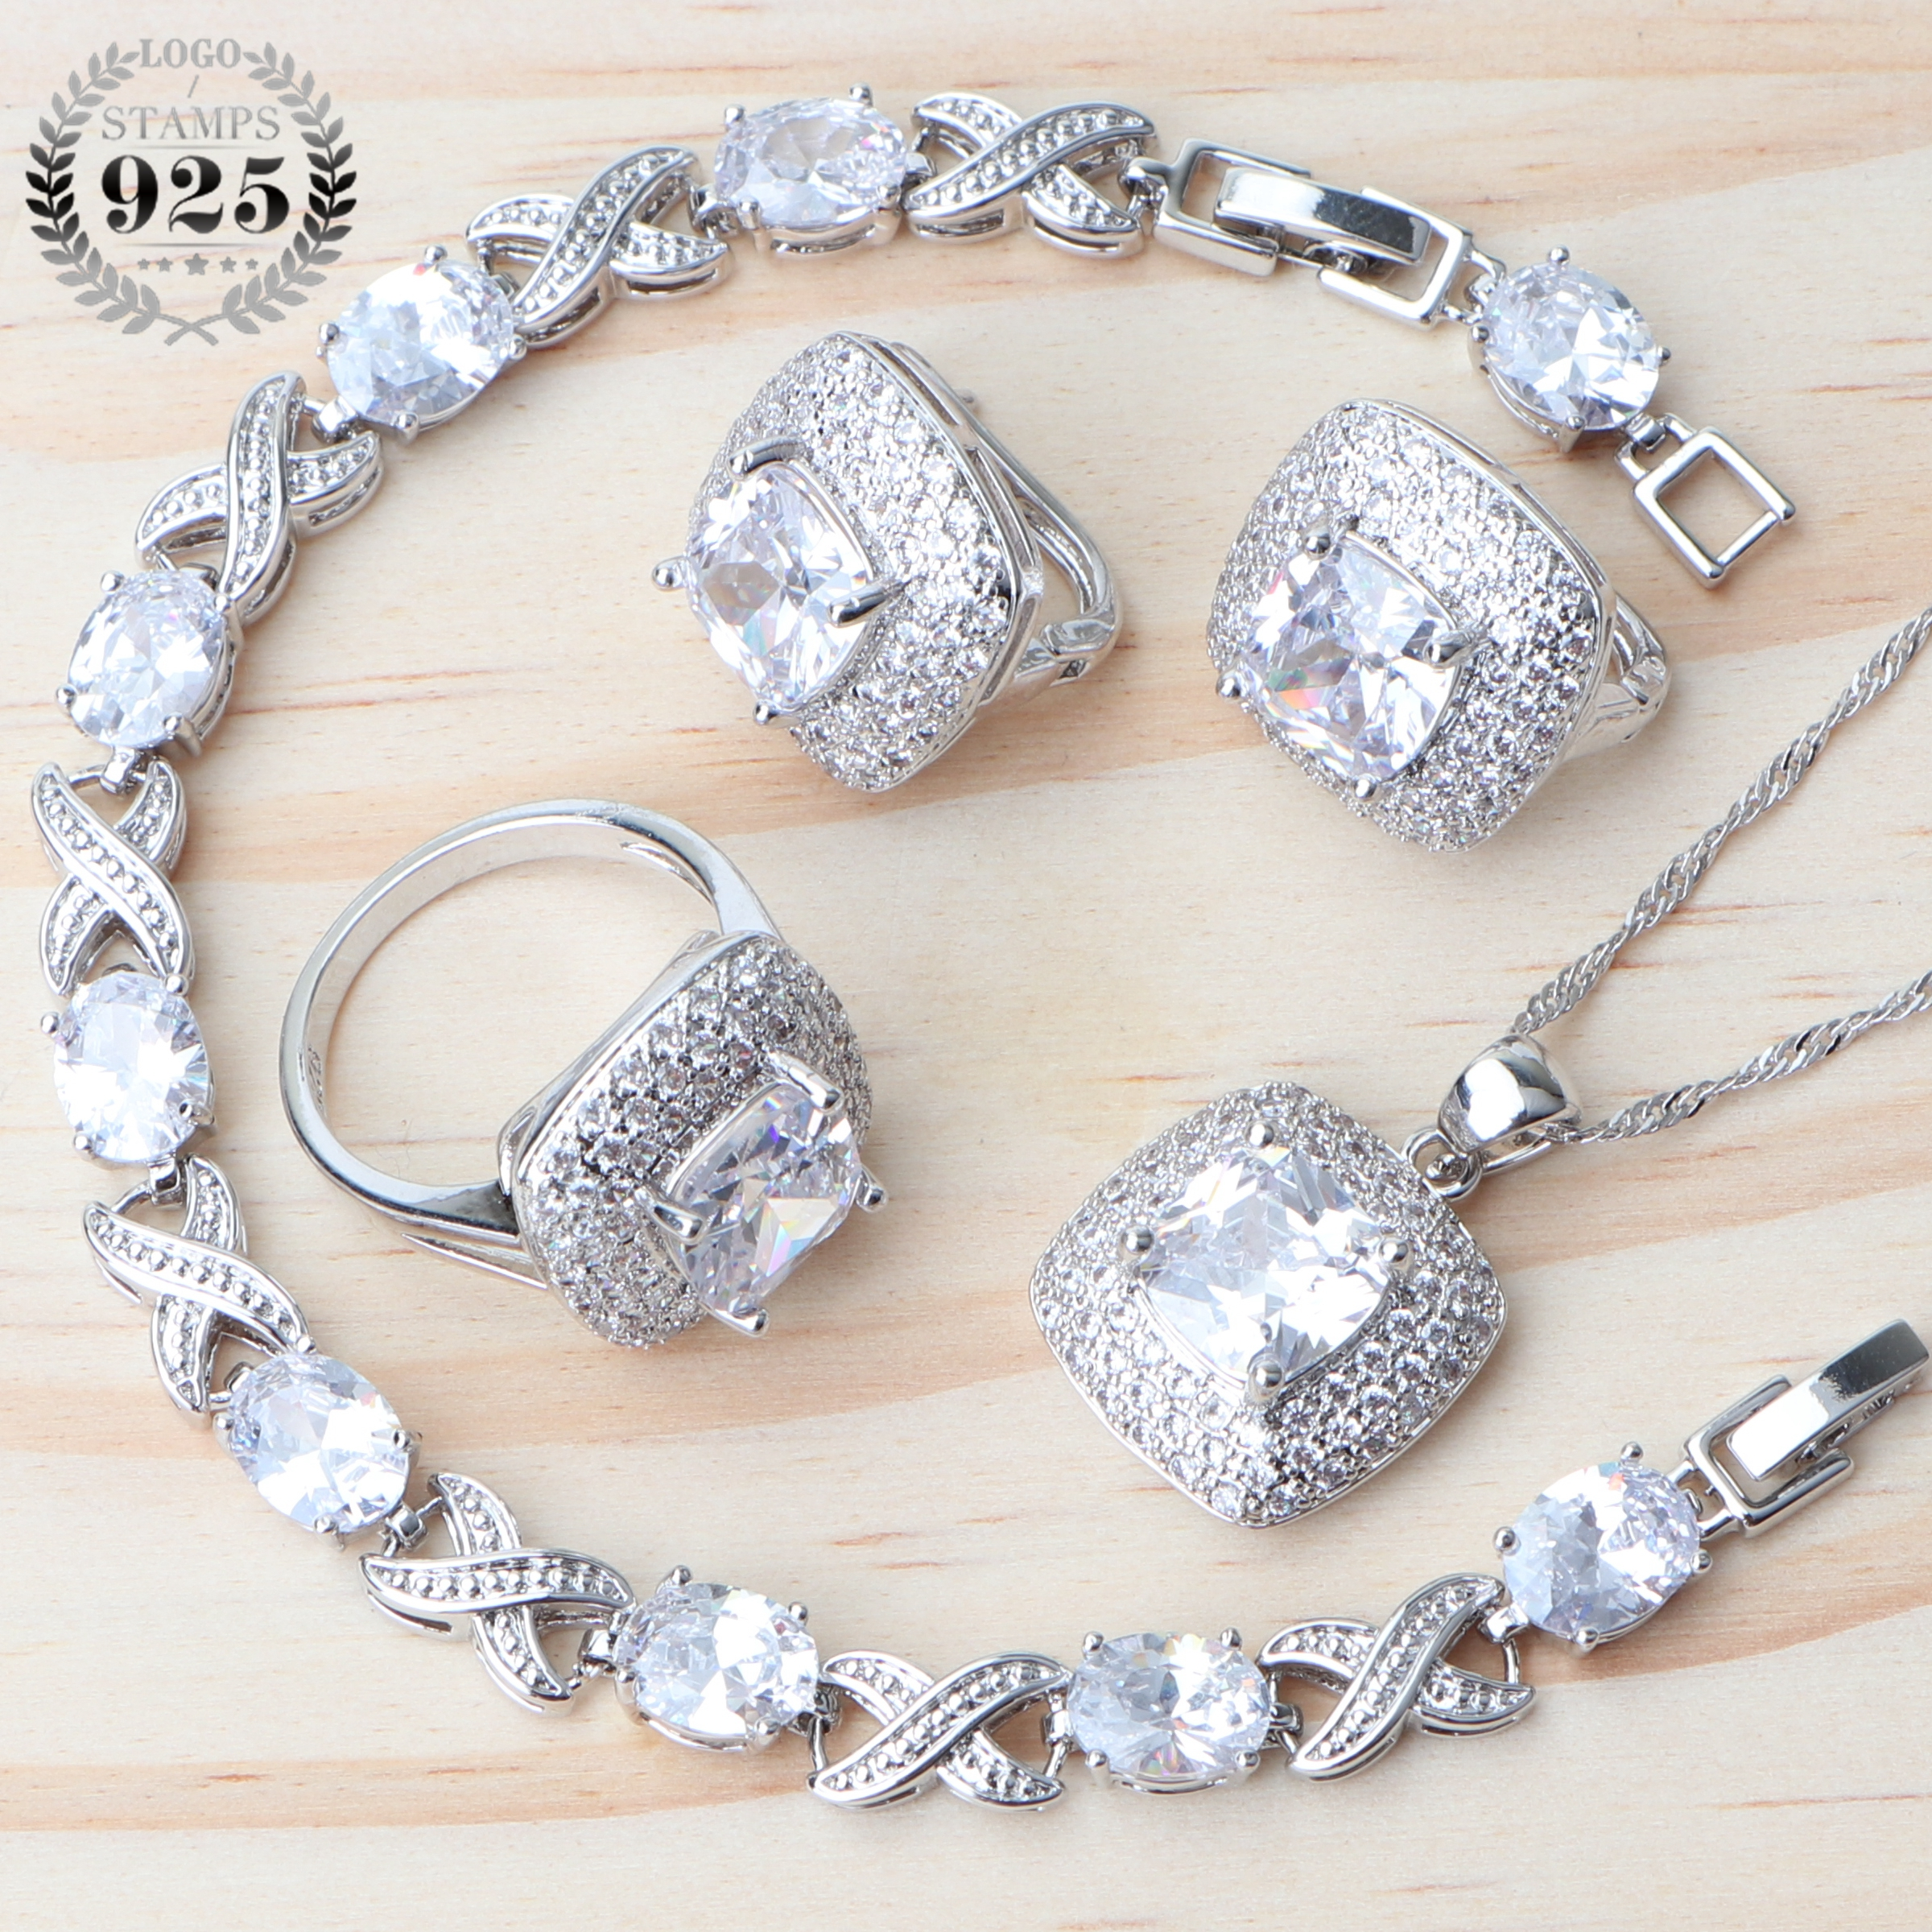 White Zirconia Women Silver 925 Jewelry Sets Earrings With Stone Pendant Necklace Rings Bracelet For Wedding Set Gifts Box